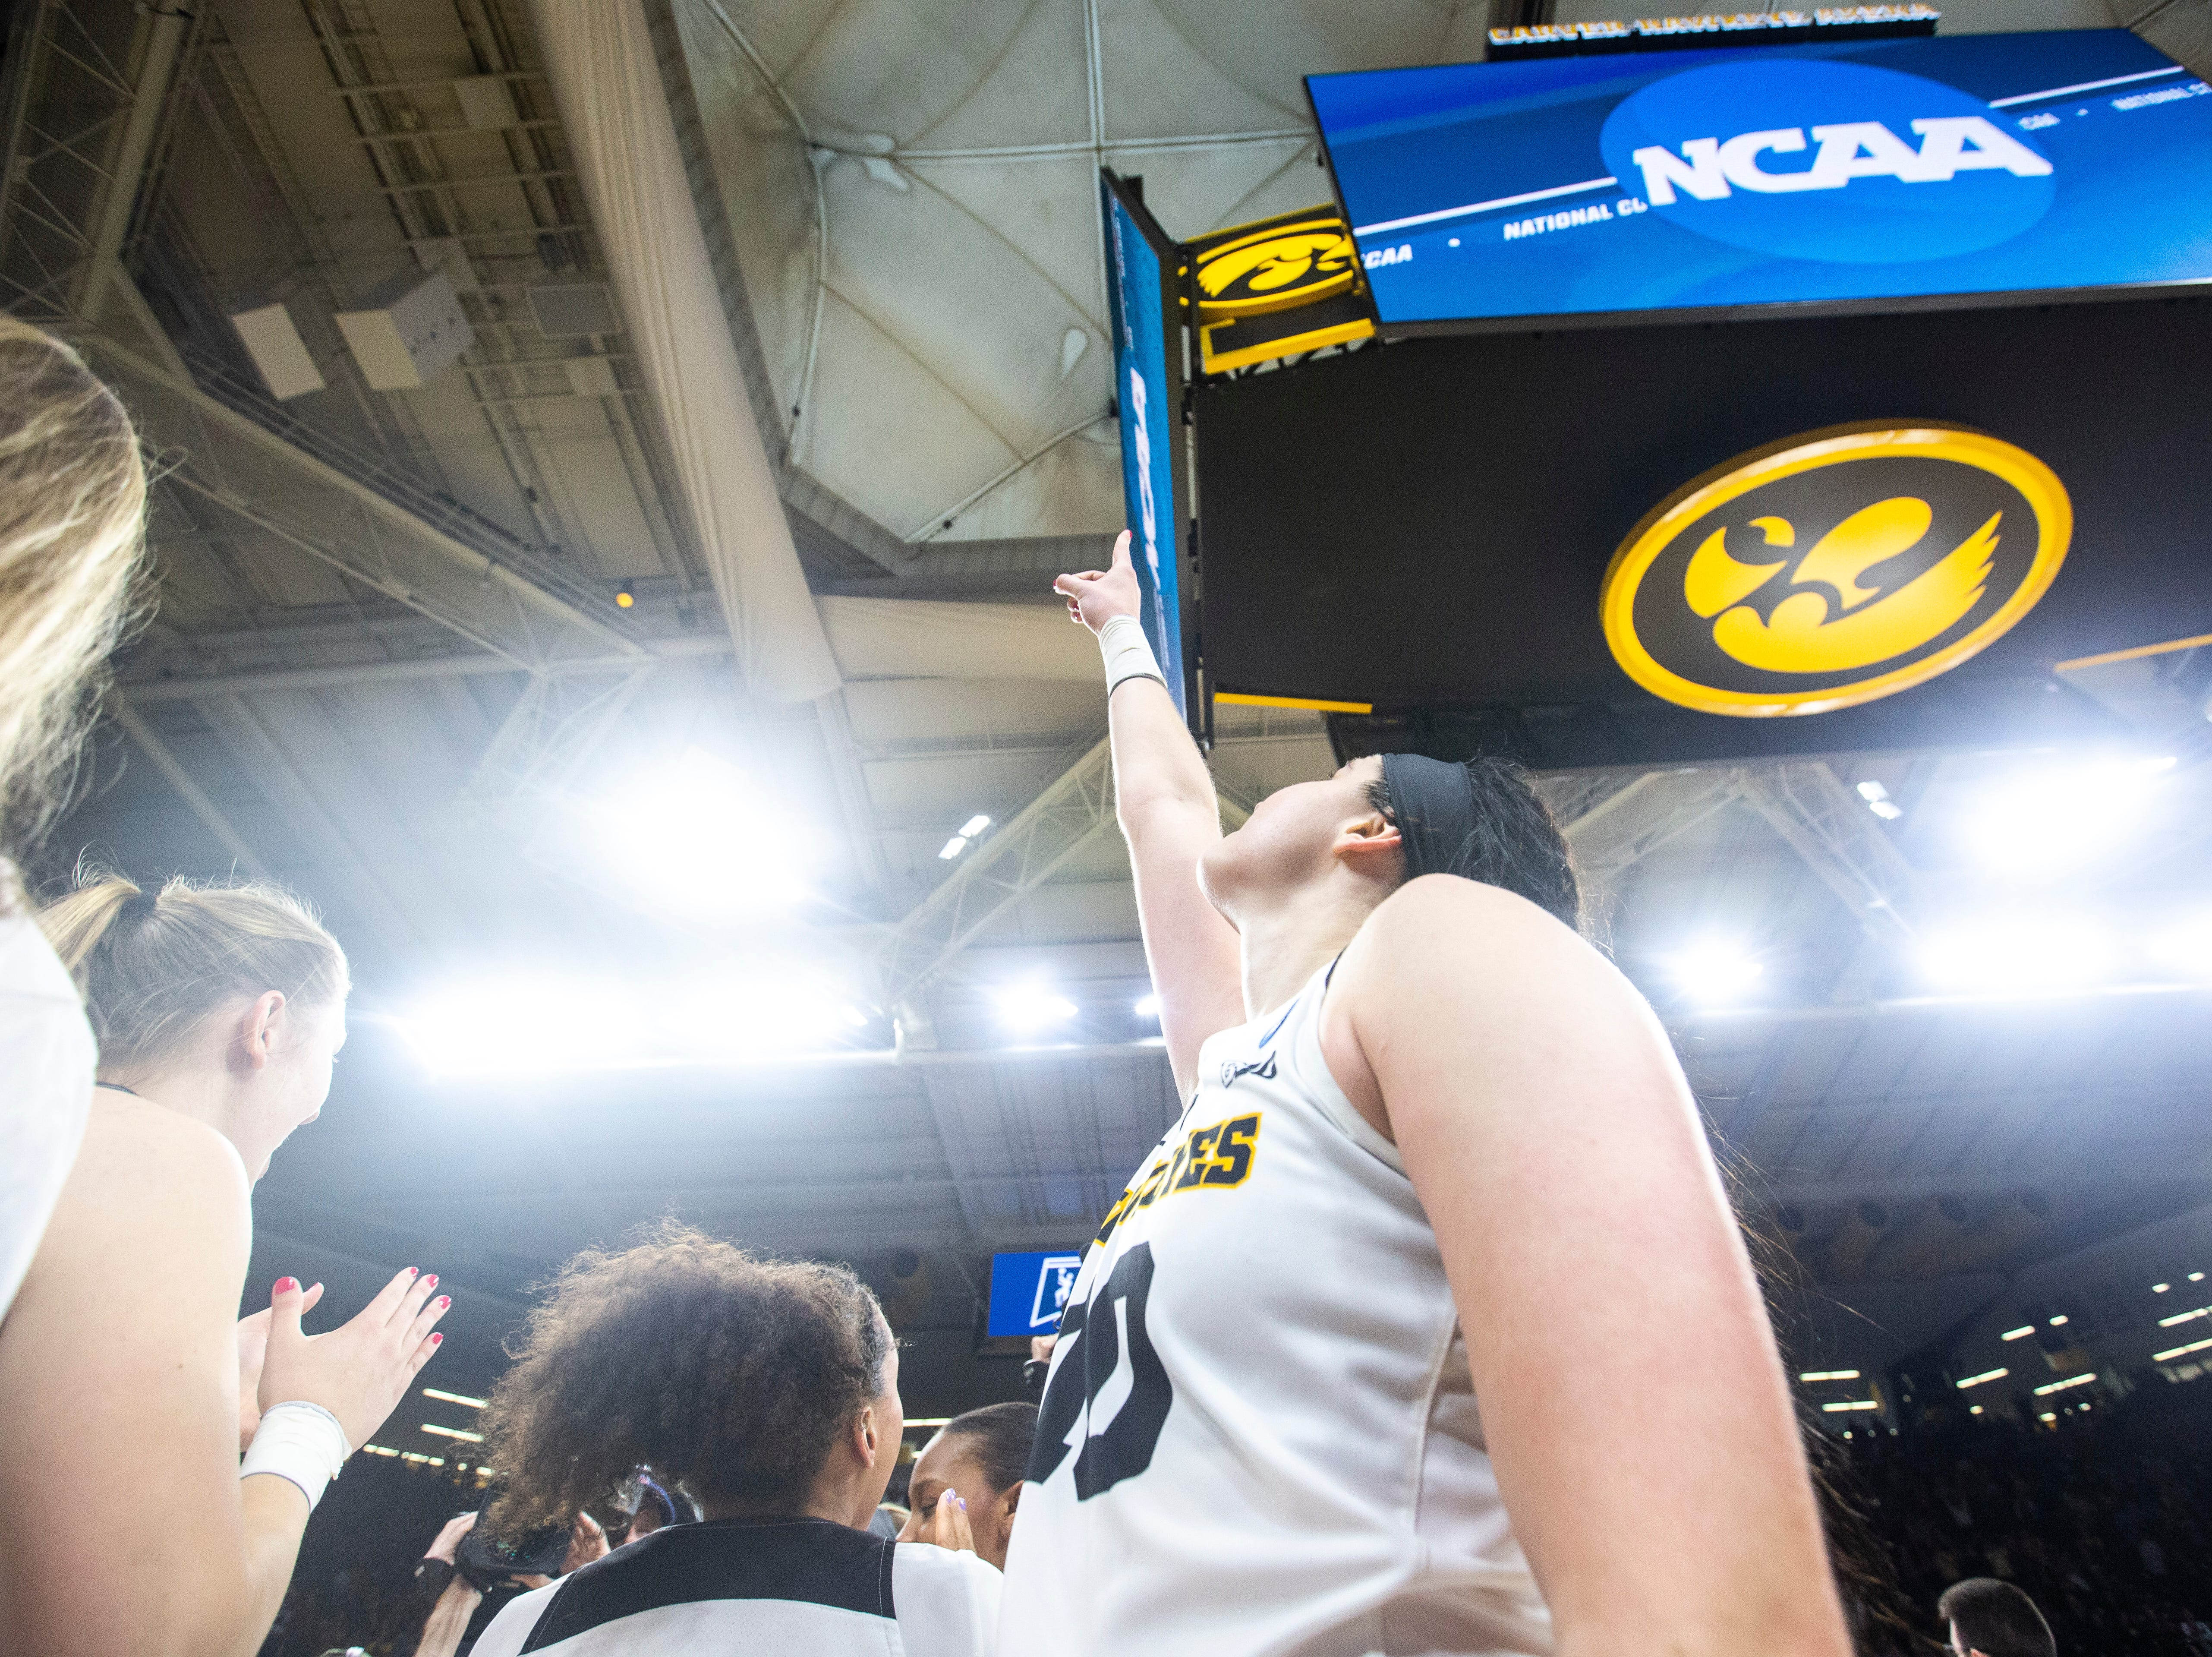 Iowa center Megan Gustafson (10) points upwards after a NCAA women's basketball tournament second-round game, Sunday, March 24, 2019, at Carver-Hawkeye Arena in Iowa City, Iowa.